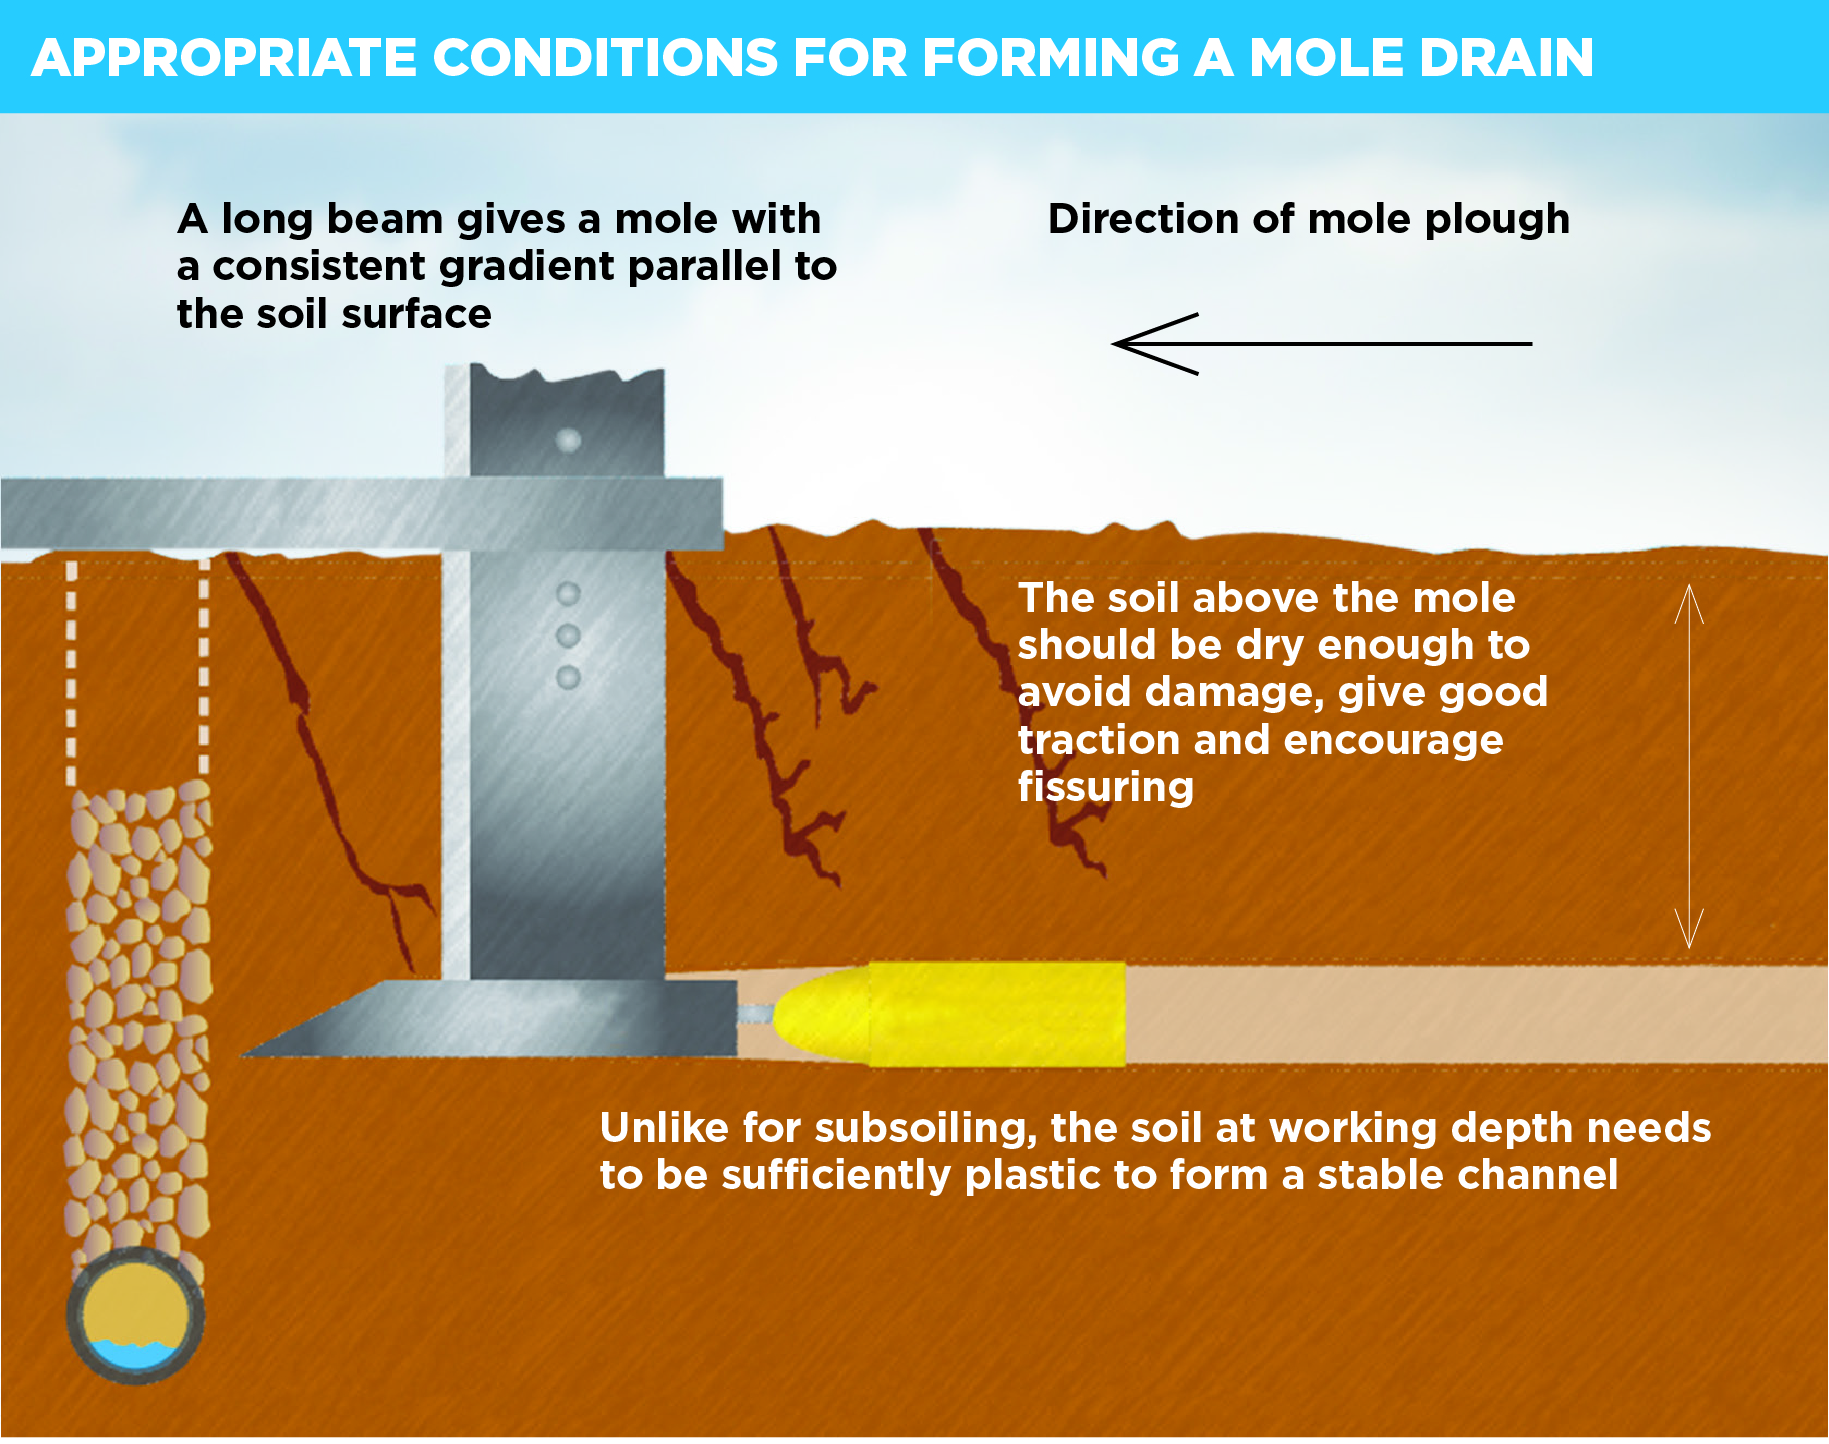 An illustration showing a mole drain